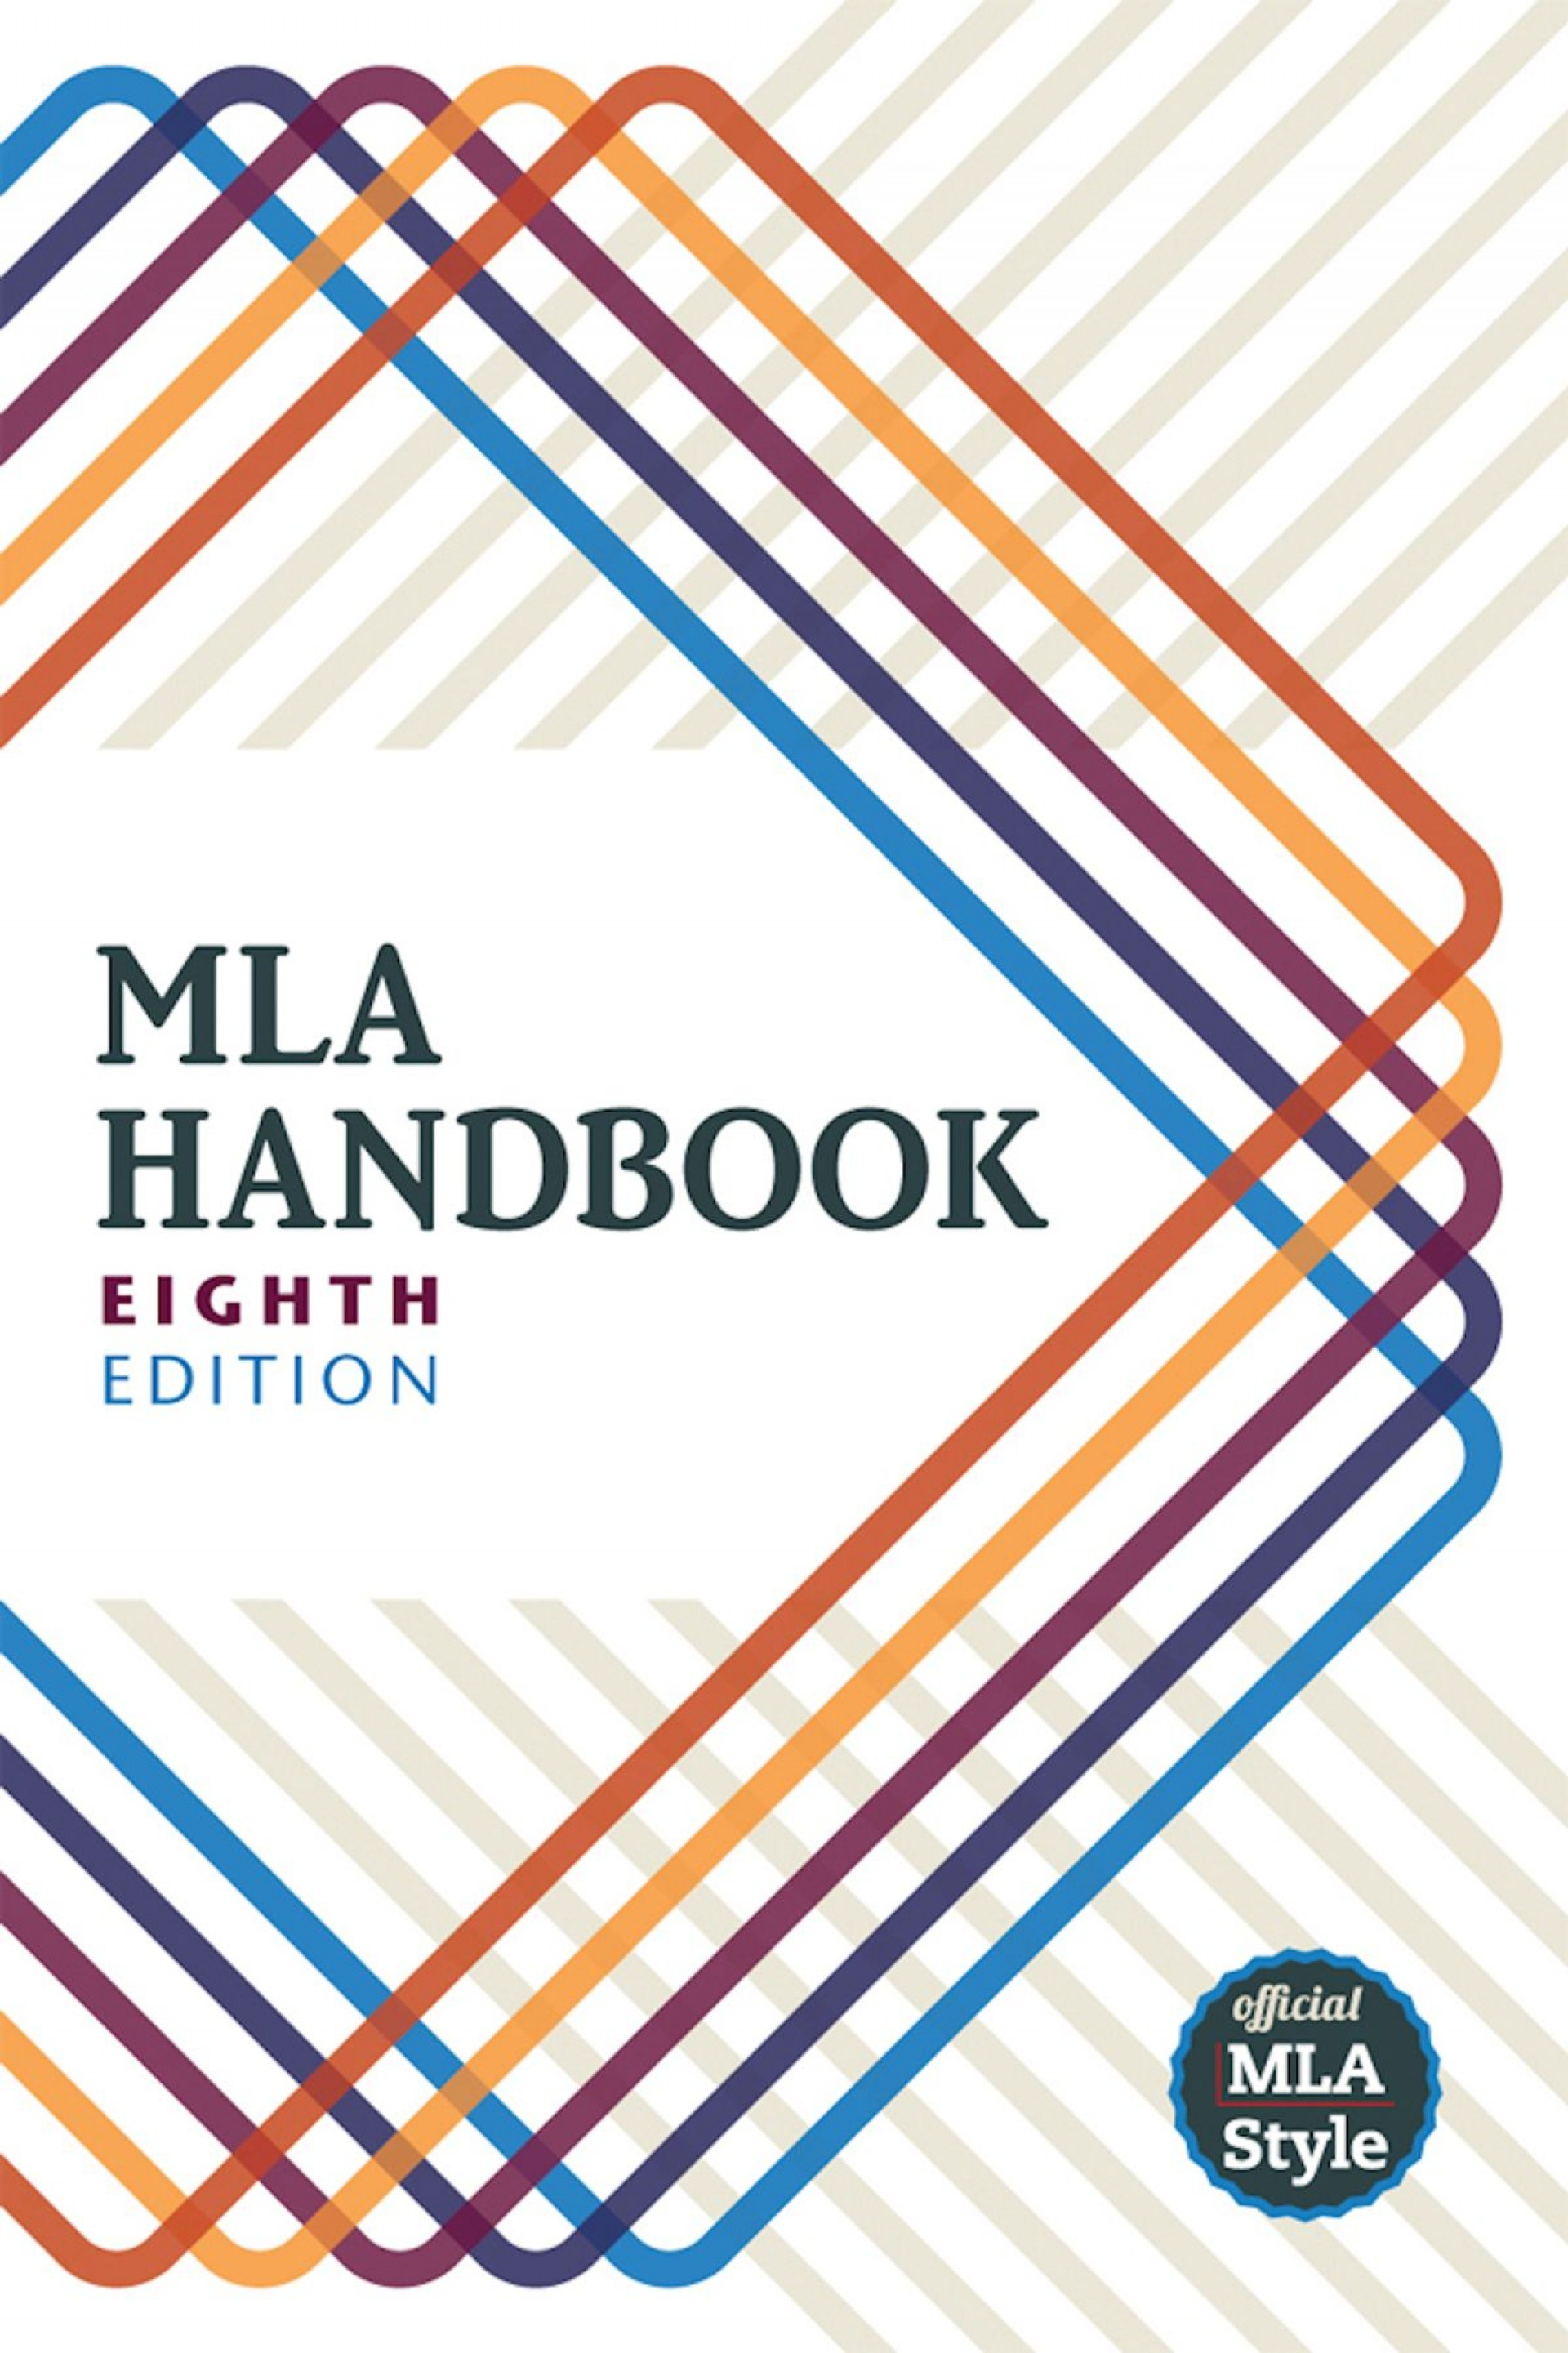 005 Mla Handbook For Writers Of Researchs 8th Edition Unique Research Papers Pdf Free Download 1920